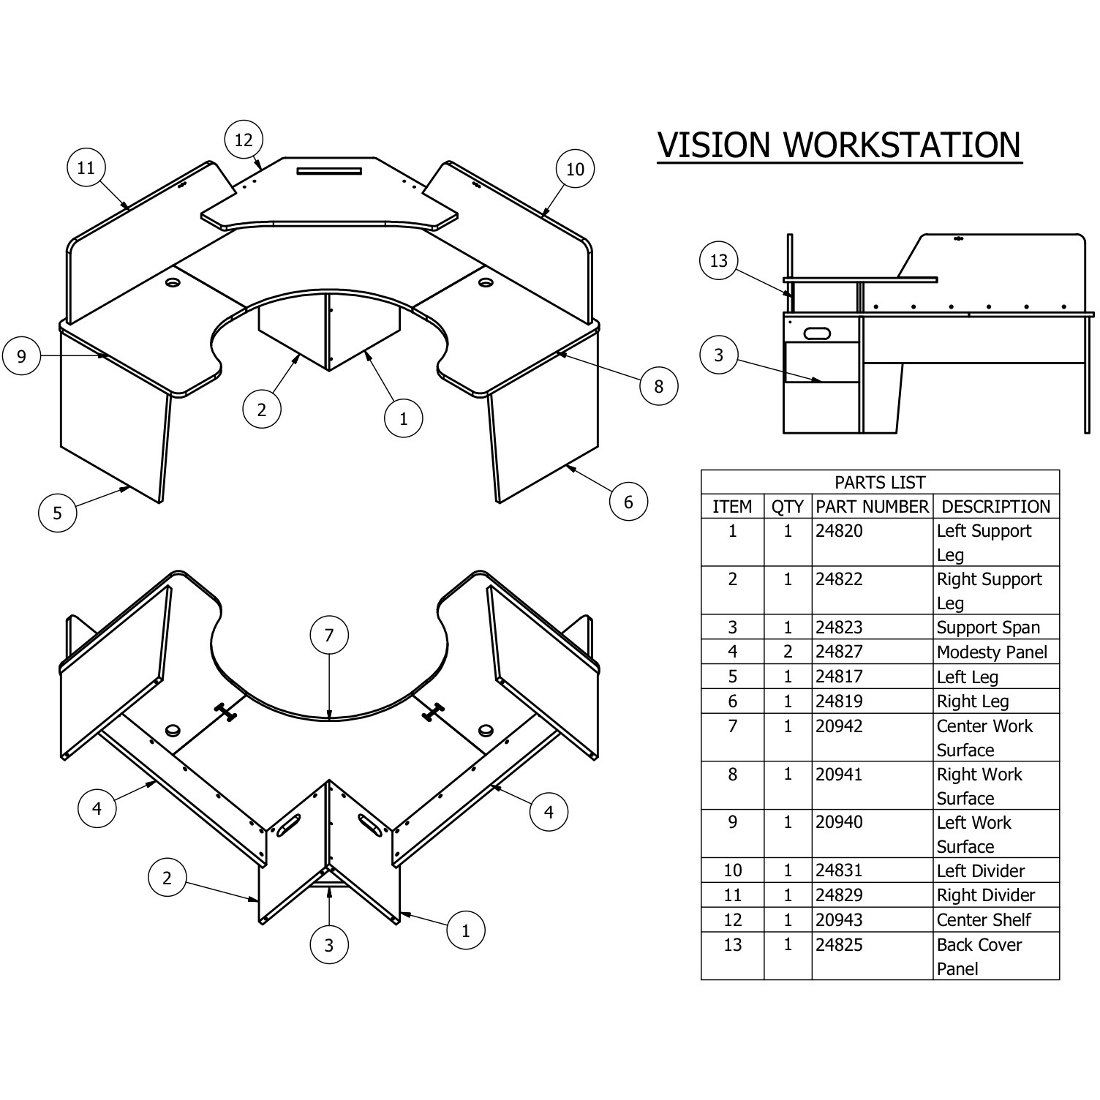 ... Items 1 And 2 For S Vision Furniture). There Is About An Inch Of  Adjustment Built Into Each Leg Leveler.